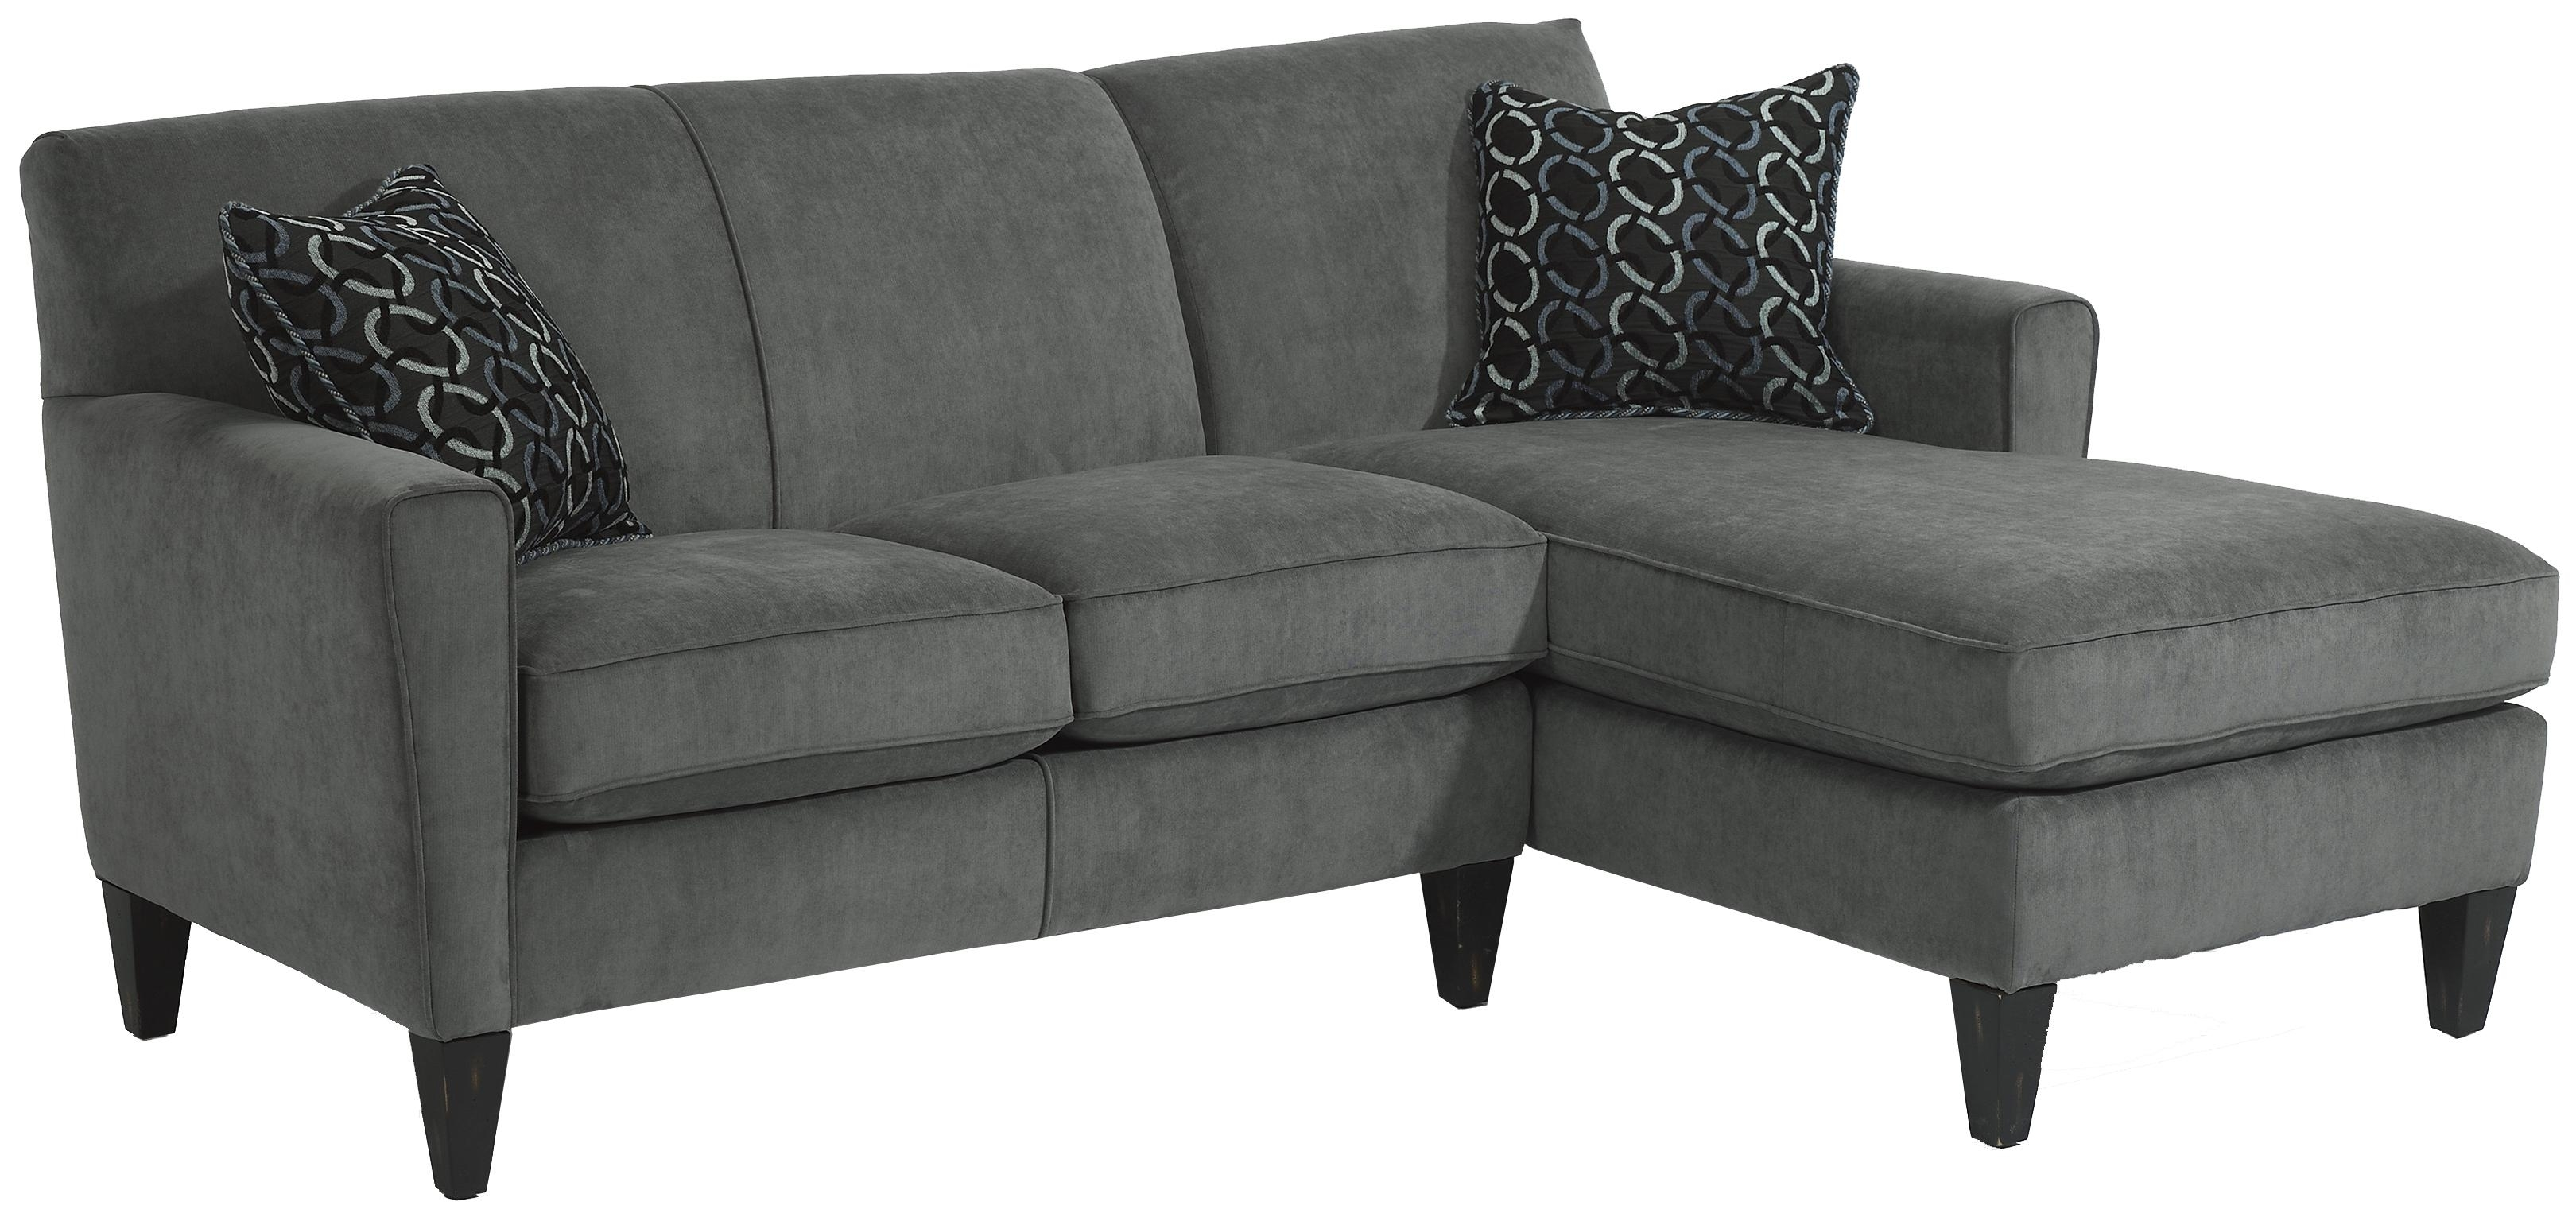 Flexsteel Digby Contemporary Sectional Sofa With Raf Chaise – Ahfa Inside Norfolk Chocolate 6 Piece Sectionals With Laf Chaise (View 14 of 25)